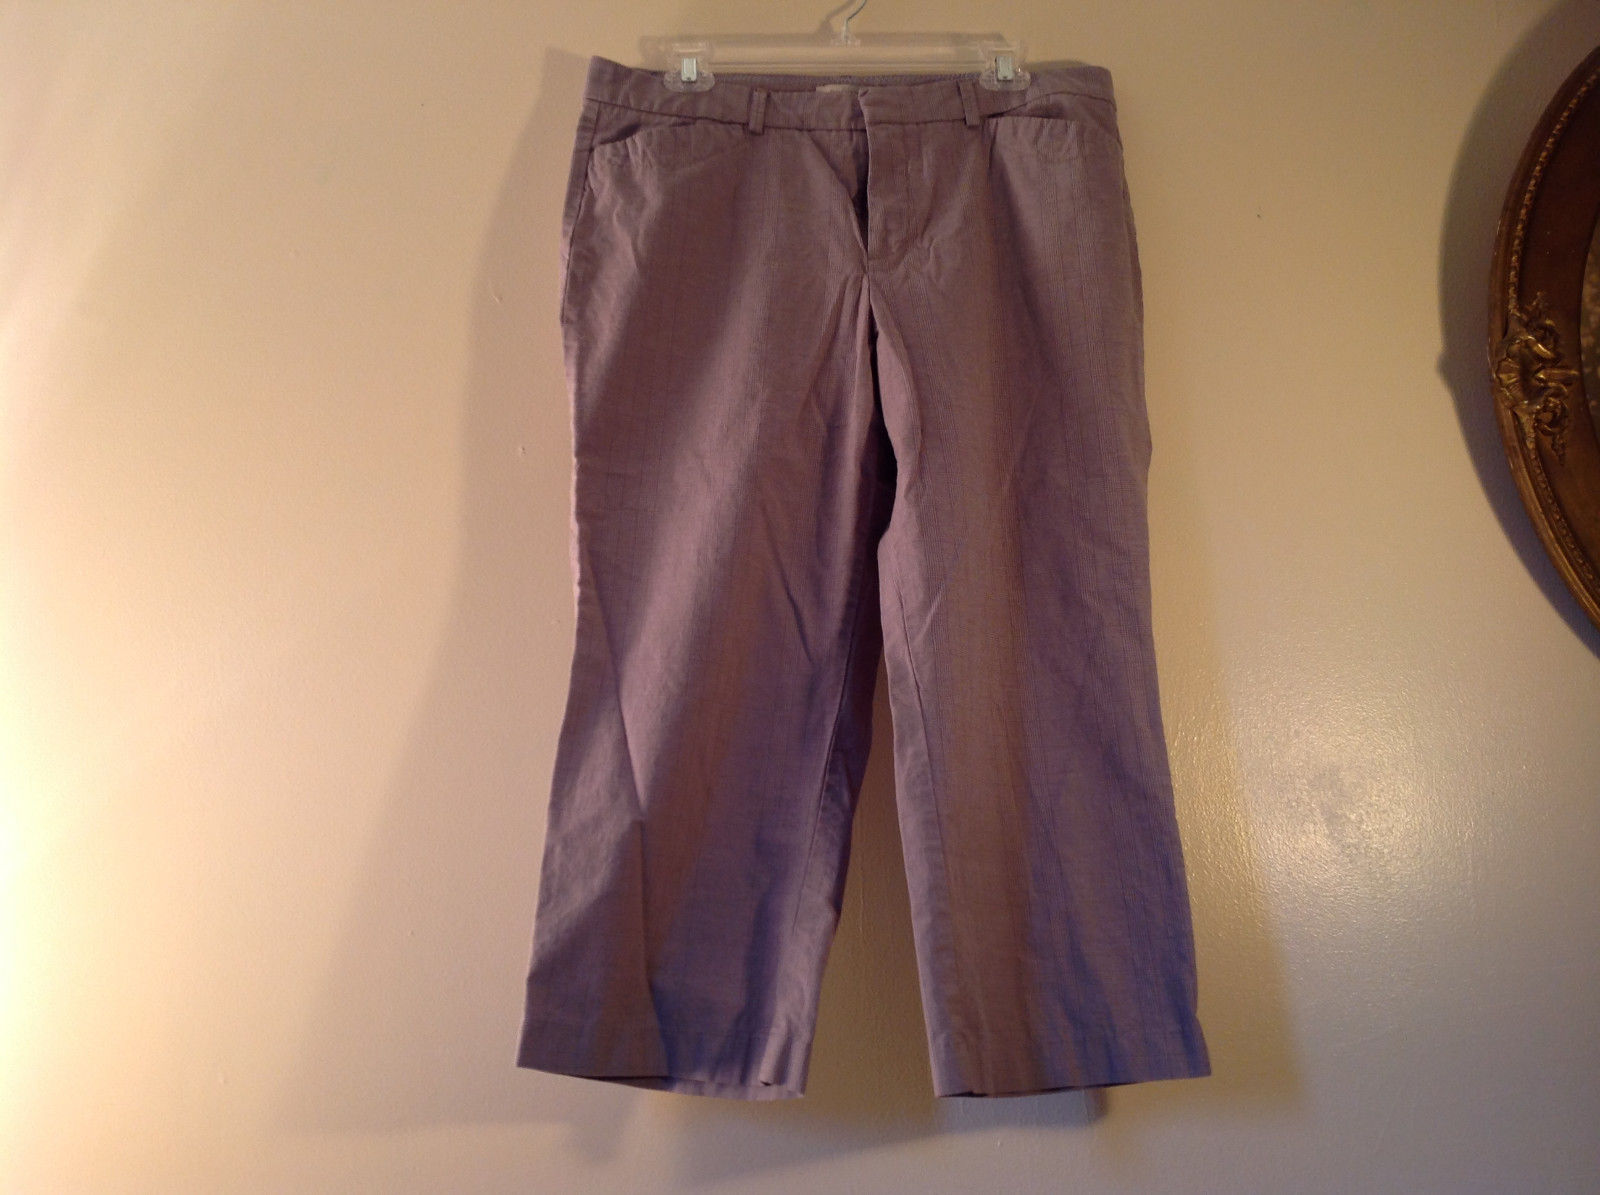 DOCKERS Size 14 Plaid Capri Pants Excellent Condition